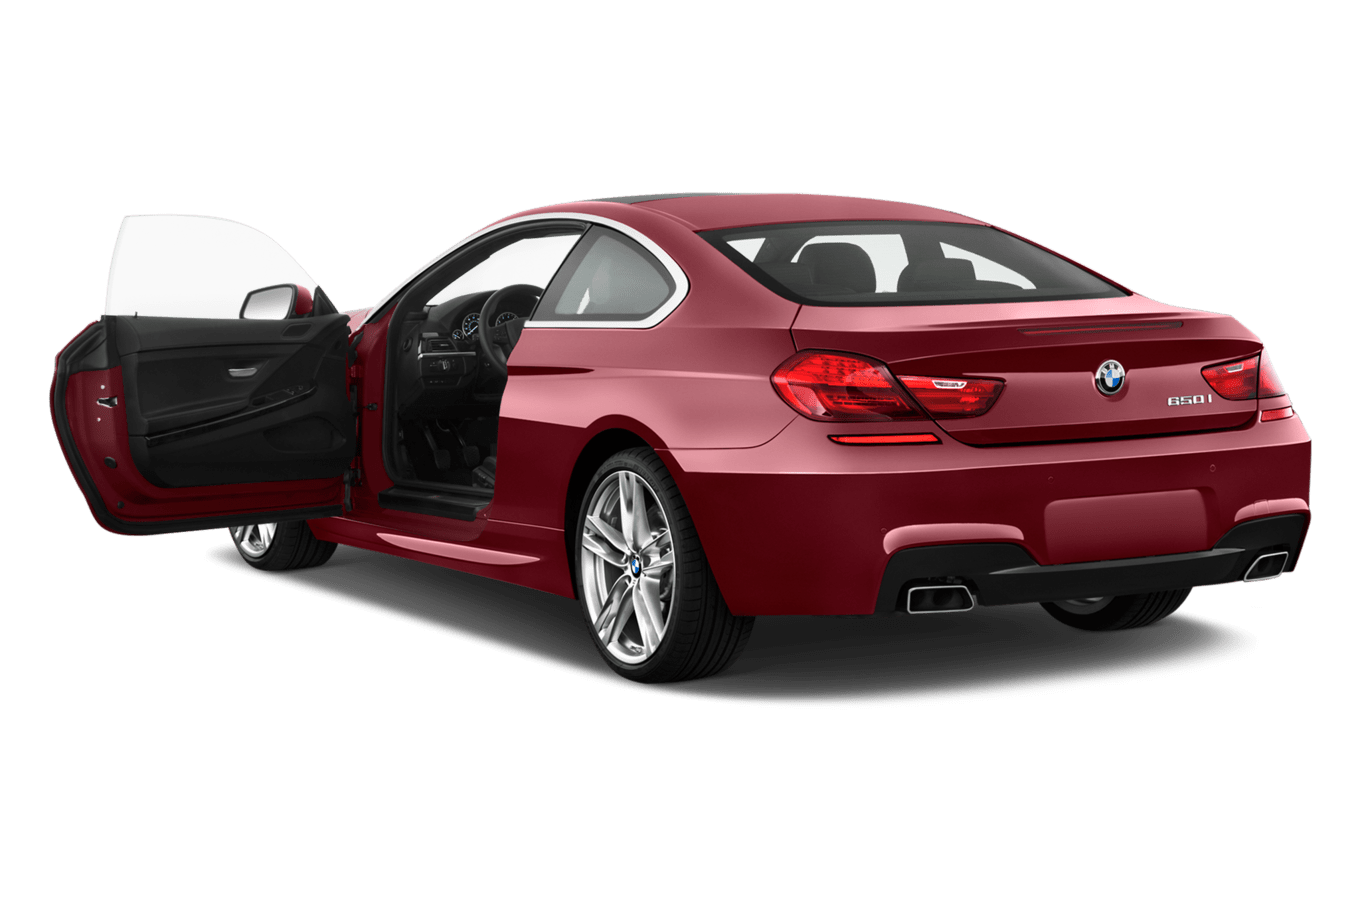 hight resolution of bmw 6 series engine diagram wiring diagrams2014 bmw 6 series reviews and rating motortrend 2011 bmw